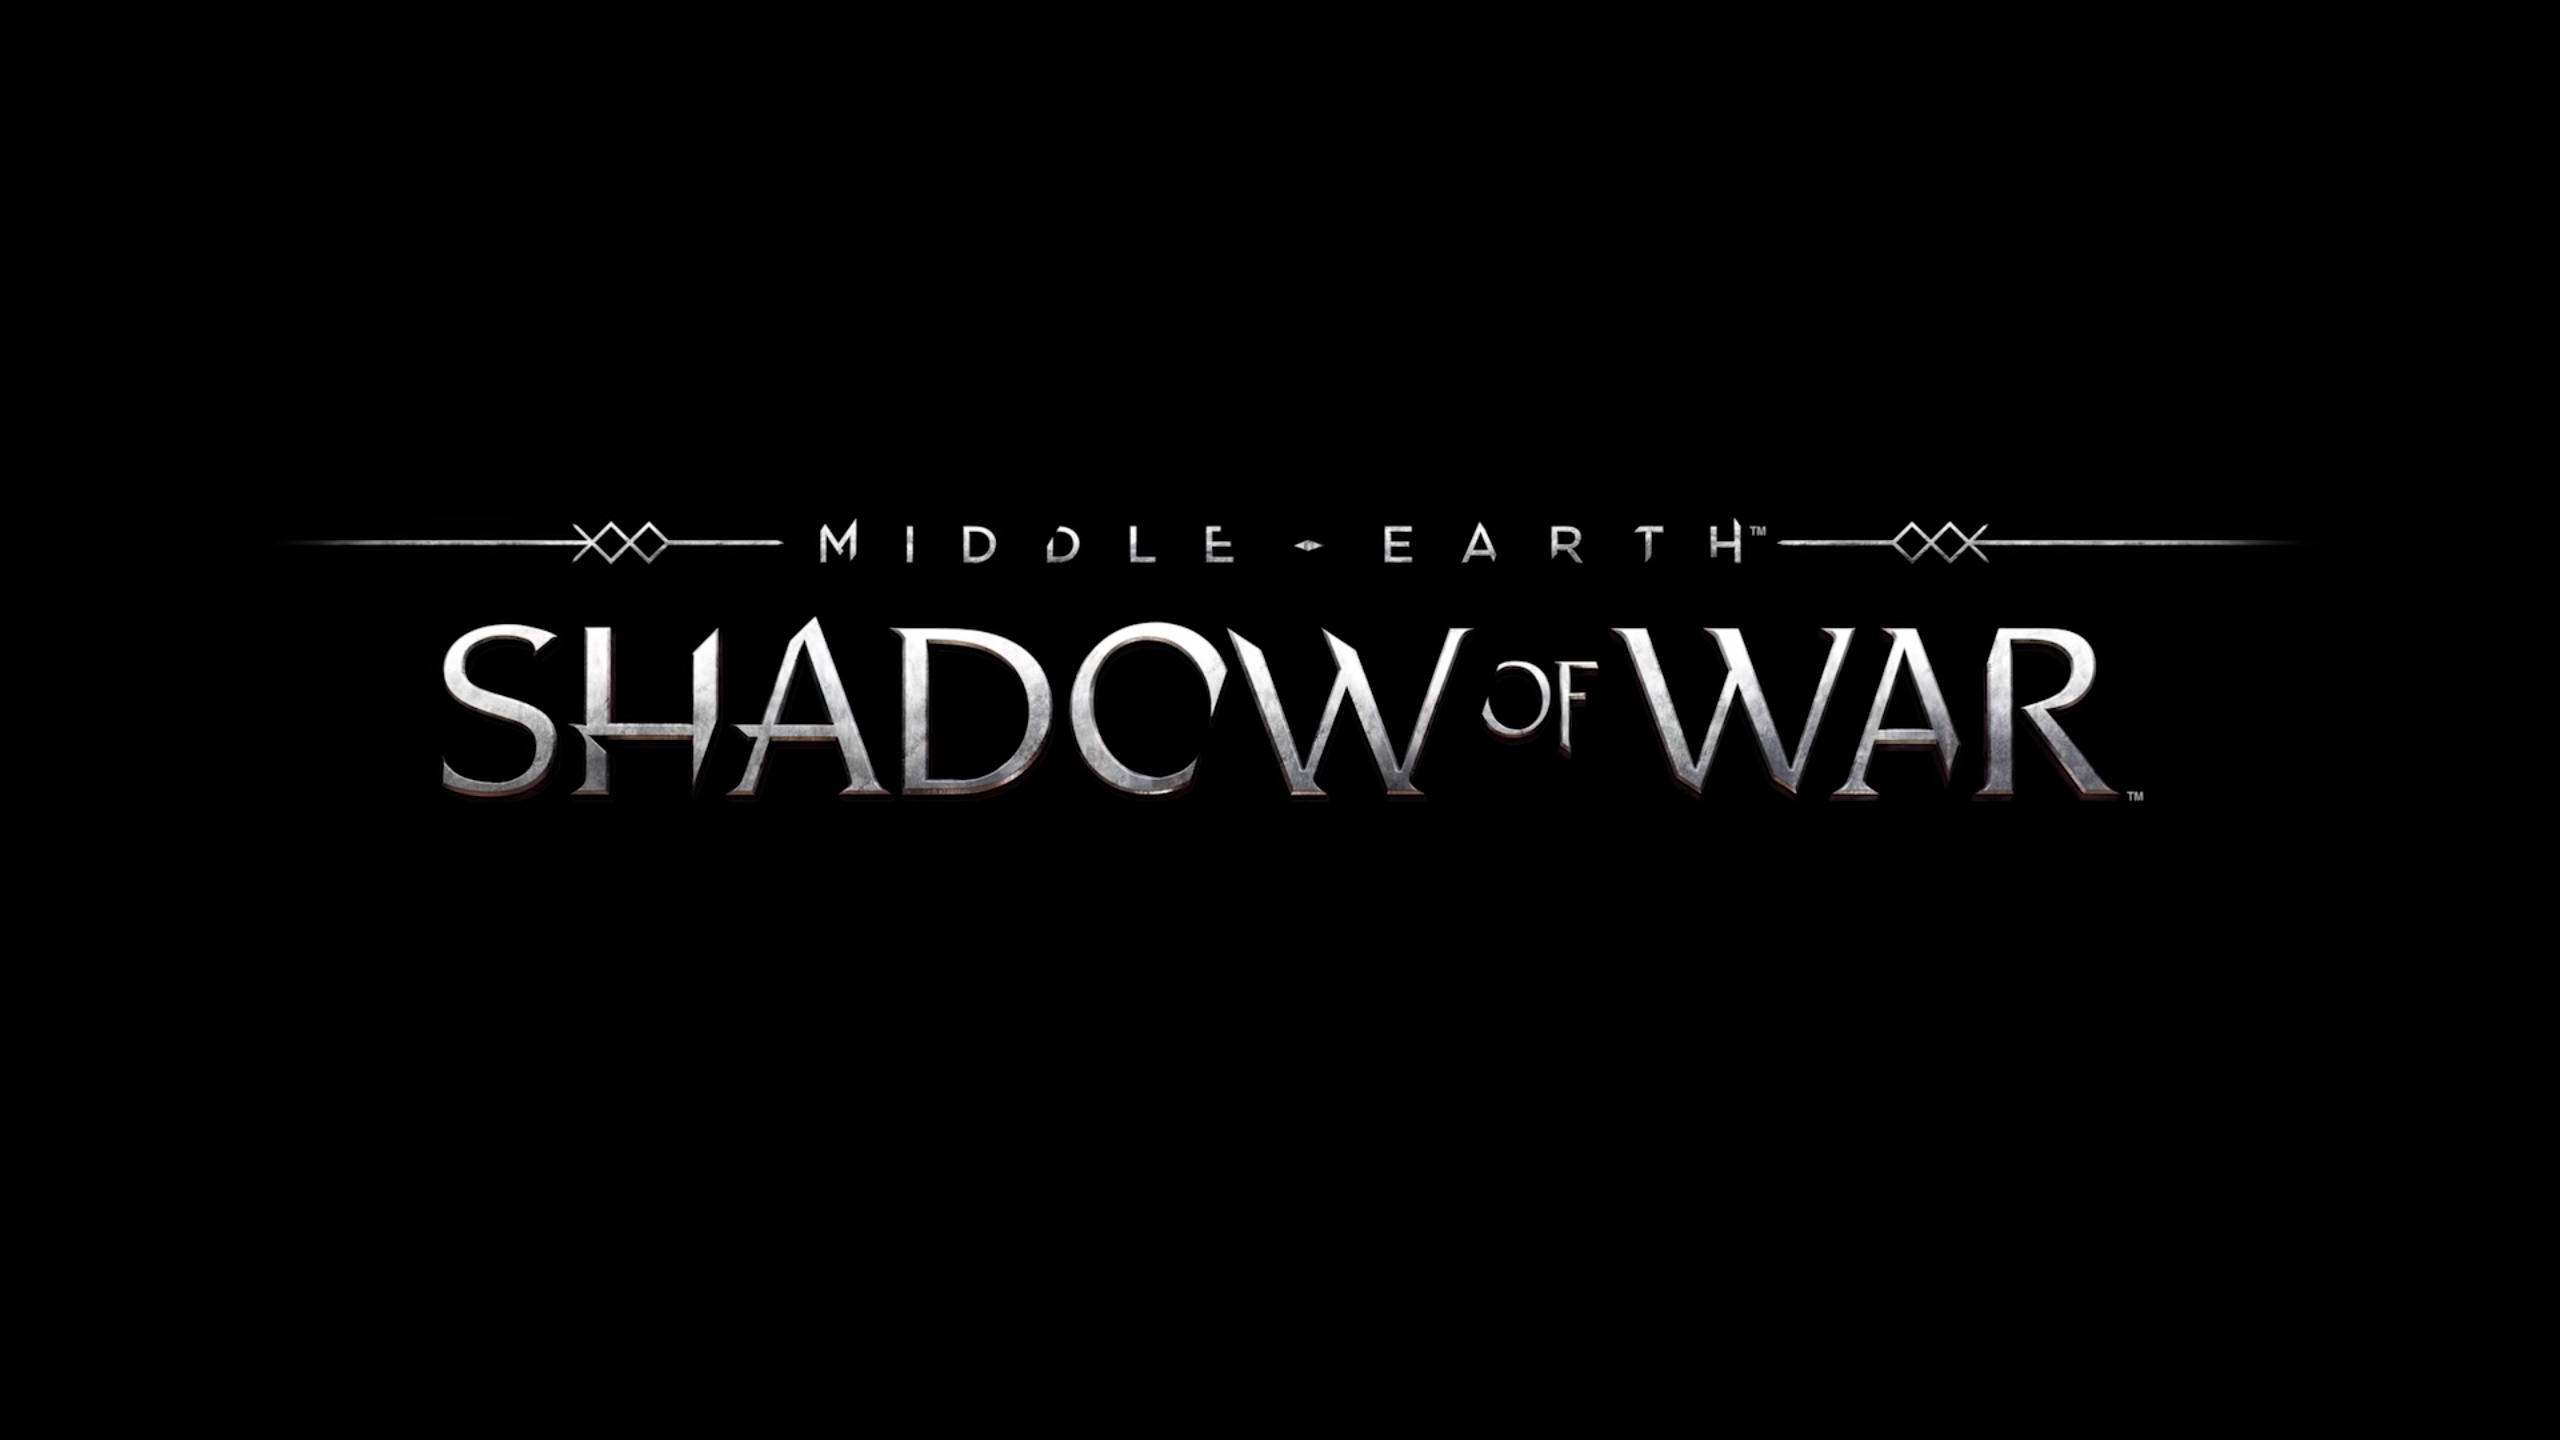 Shadow Of War Hd Wallpaper: Middle-earth: Shadow Of War Wallpapers, Pictures, Images